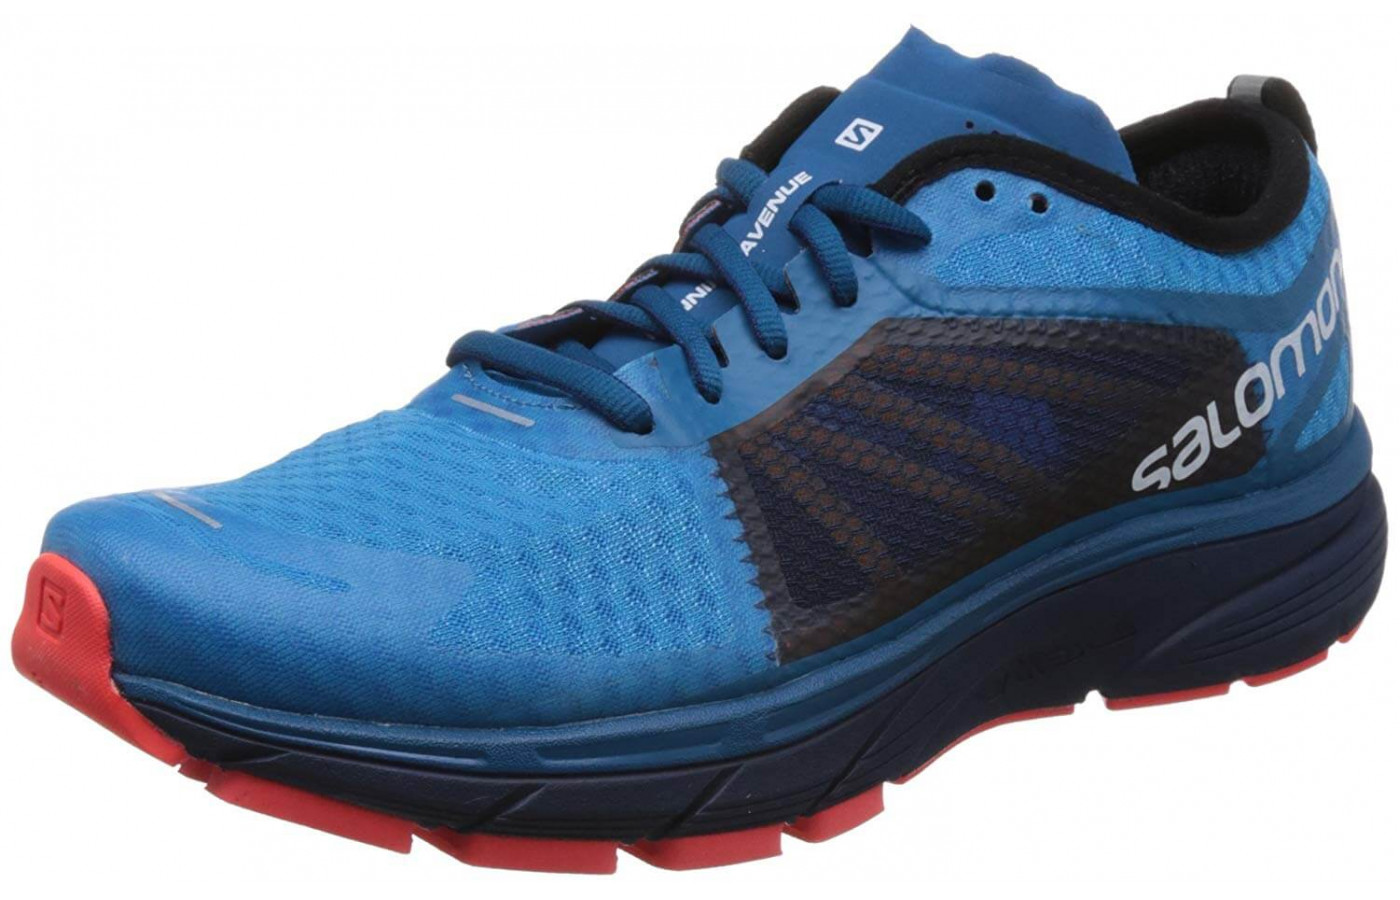 The Sonic RA is available in several appealing colorways.